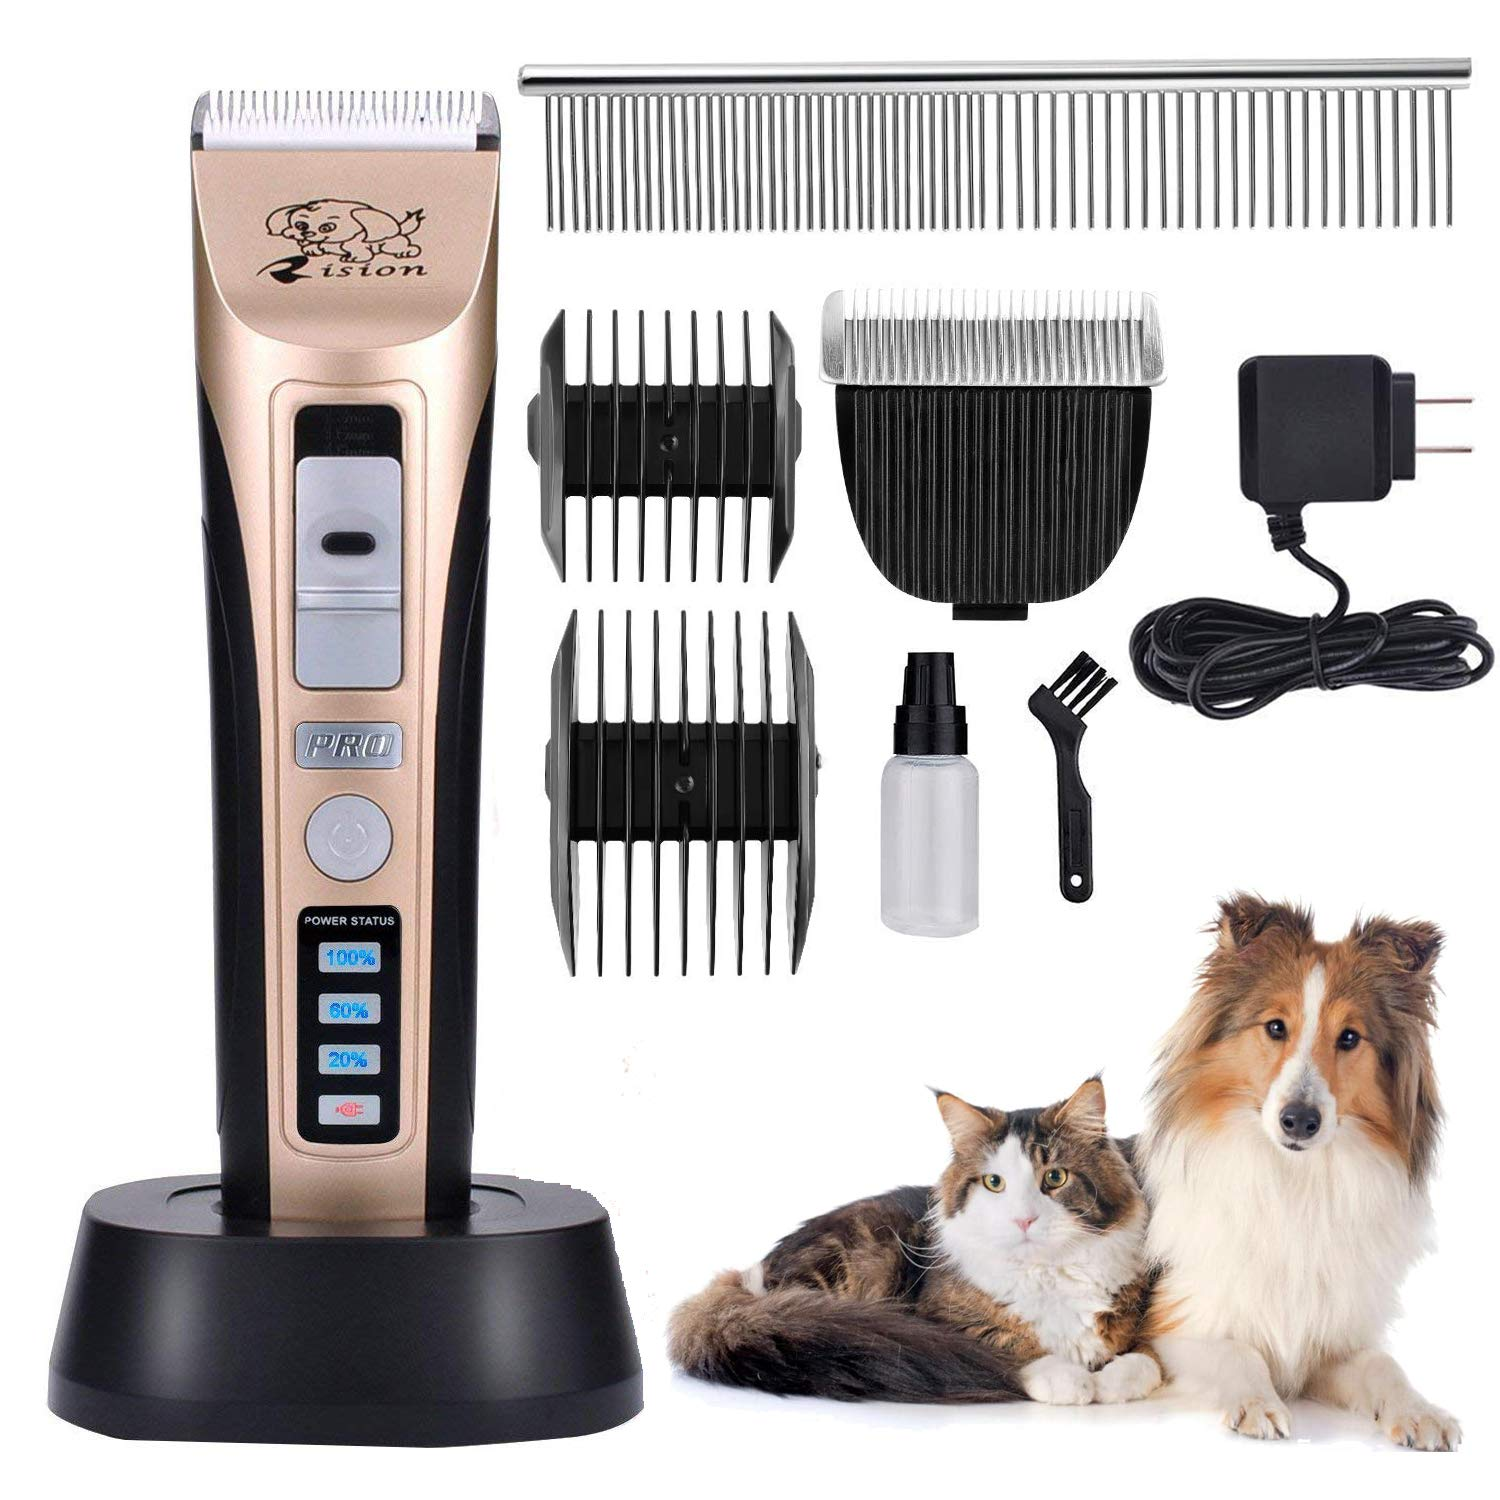 Rision Pet Clippers, Low Noise Rechargeable Cordless Dog Trimmers Professional Animal Grooming Shavers for Thick Hair Dogs, Cats, Rabbits and Horses by Rision